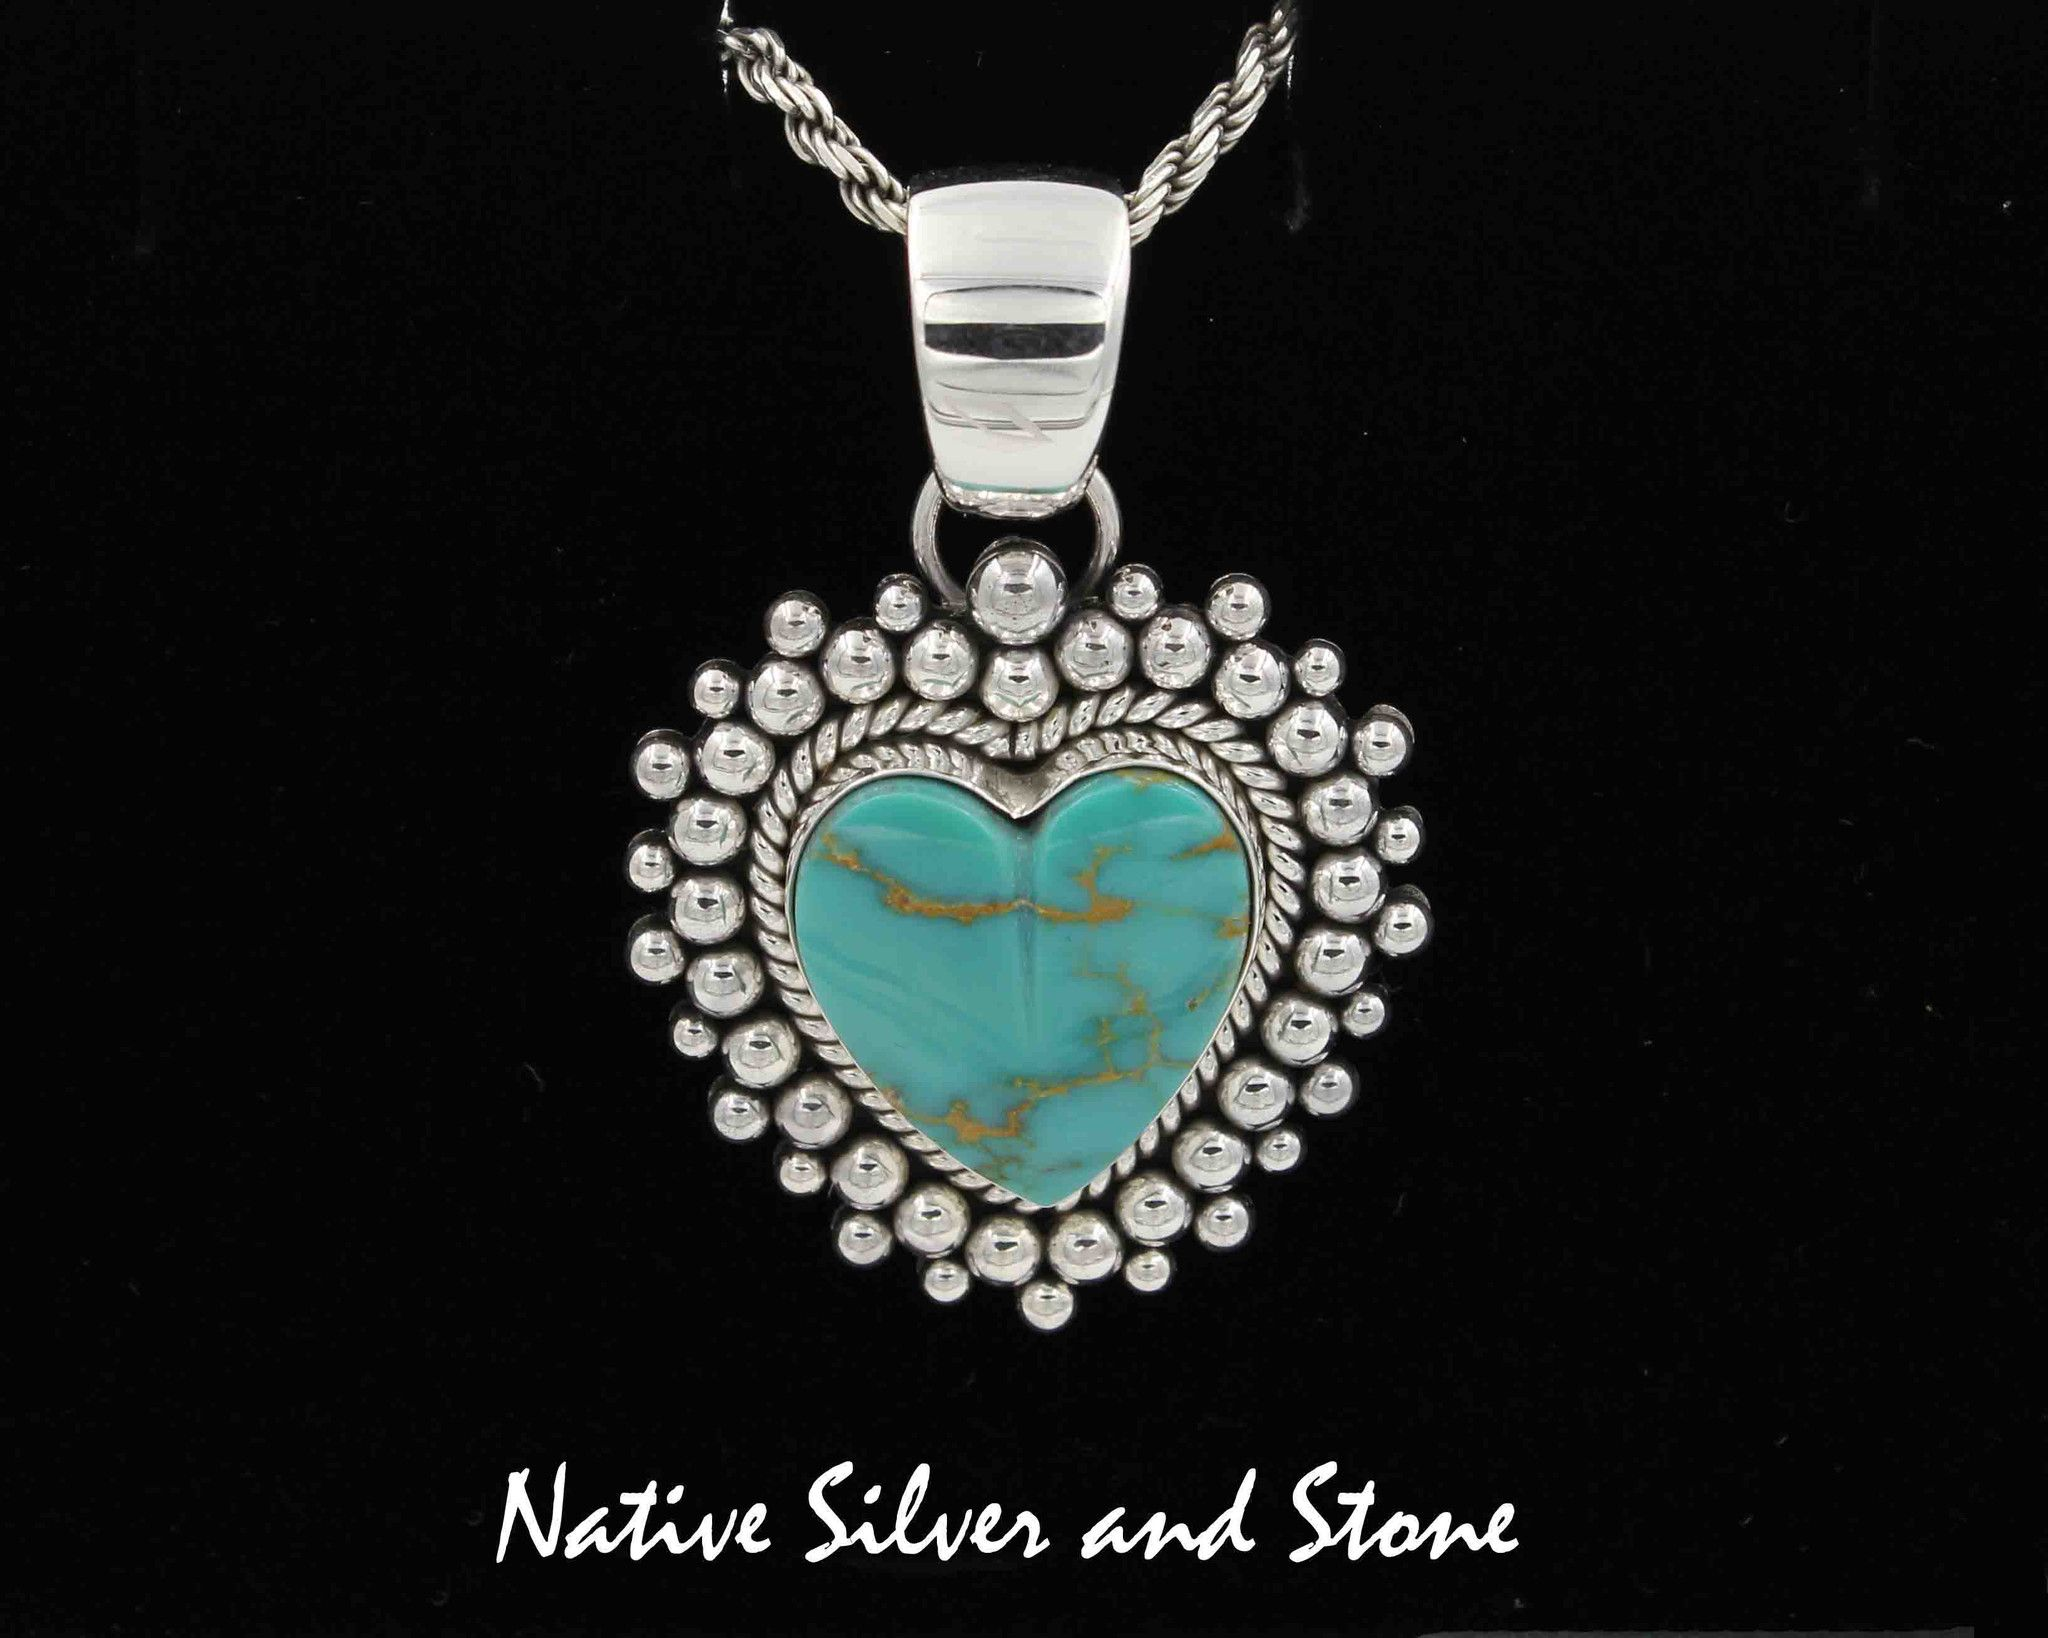 yellowhorse royston and product indian jewelry native navajo silver artist pendant sterling artie by turquoise american